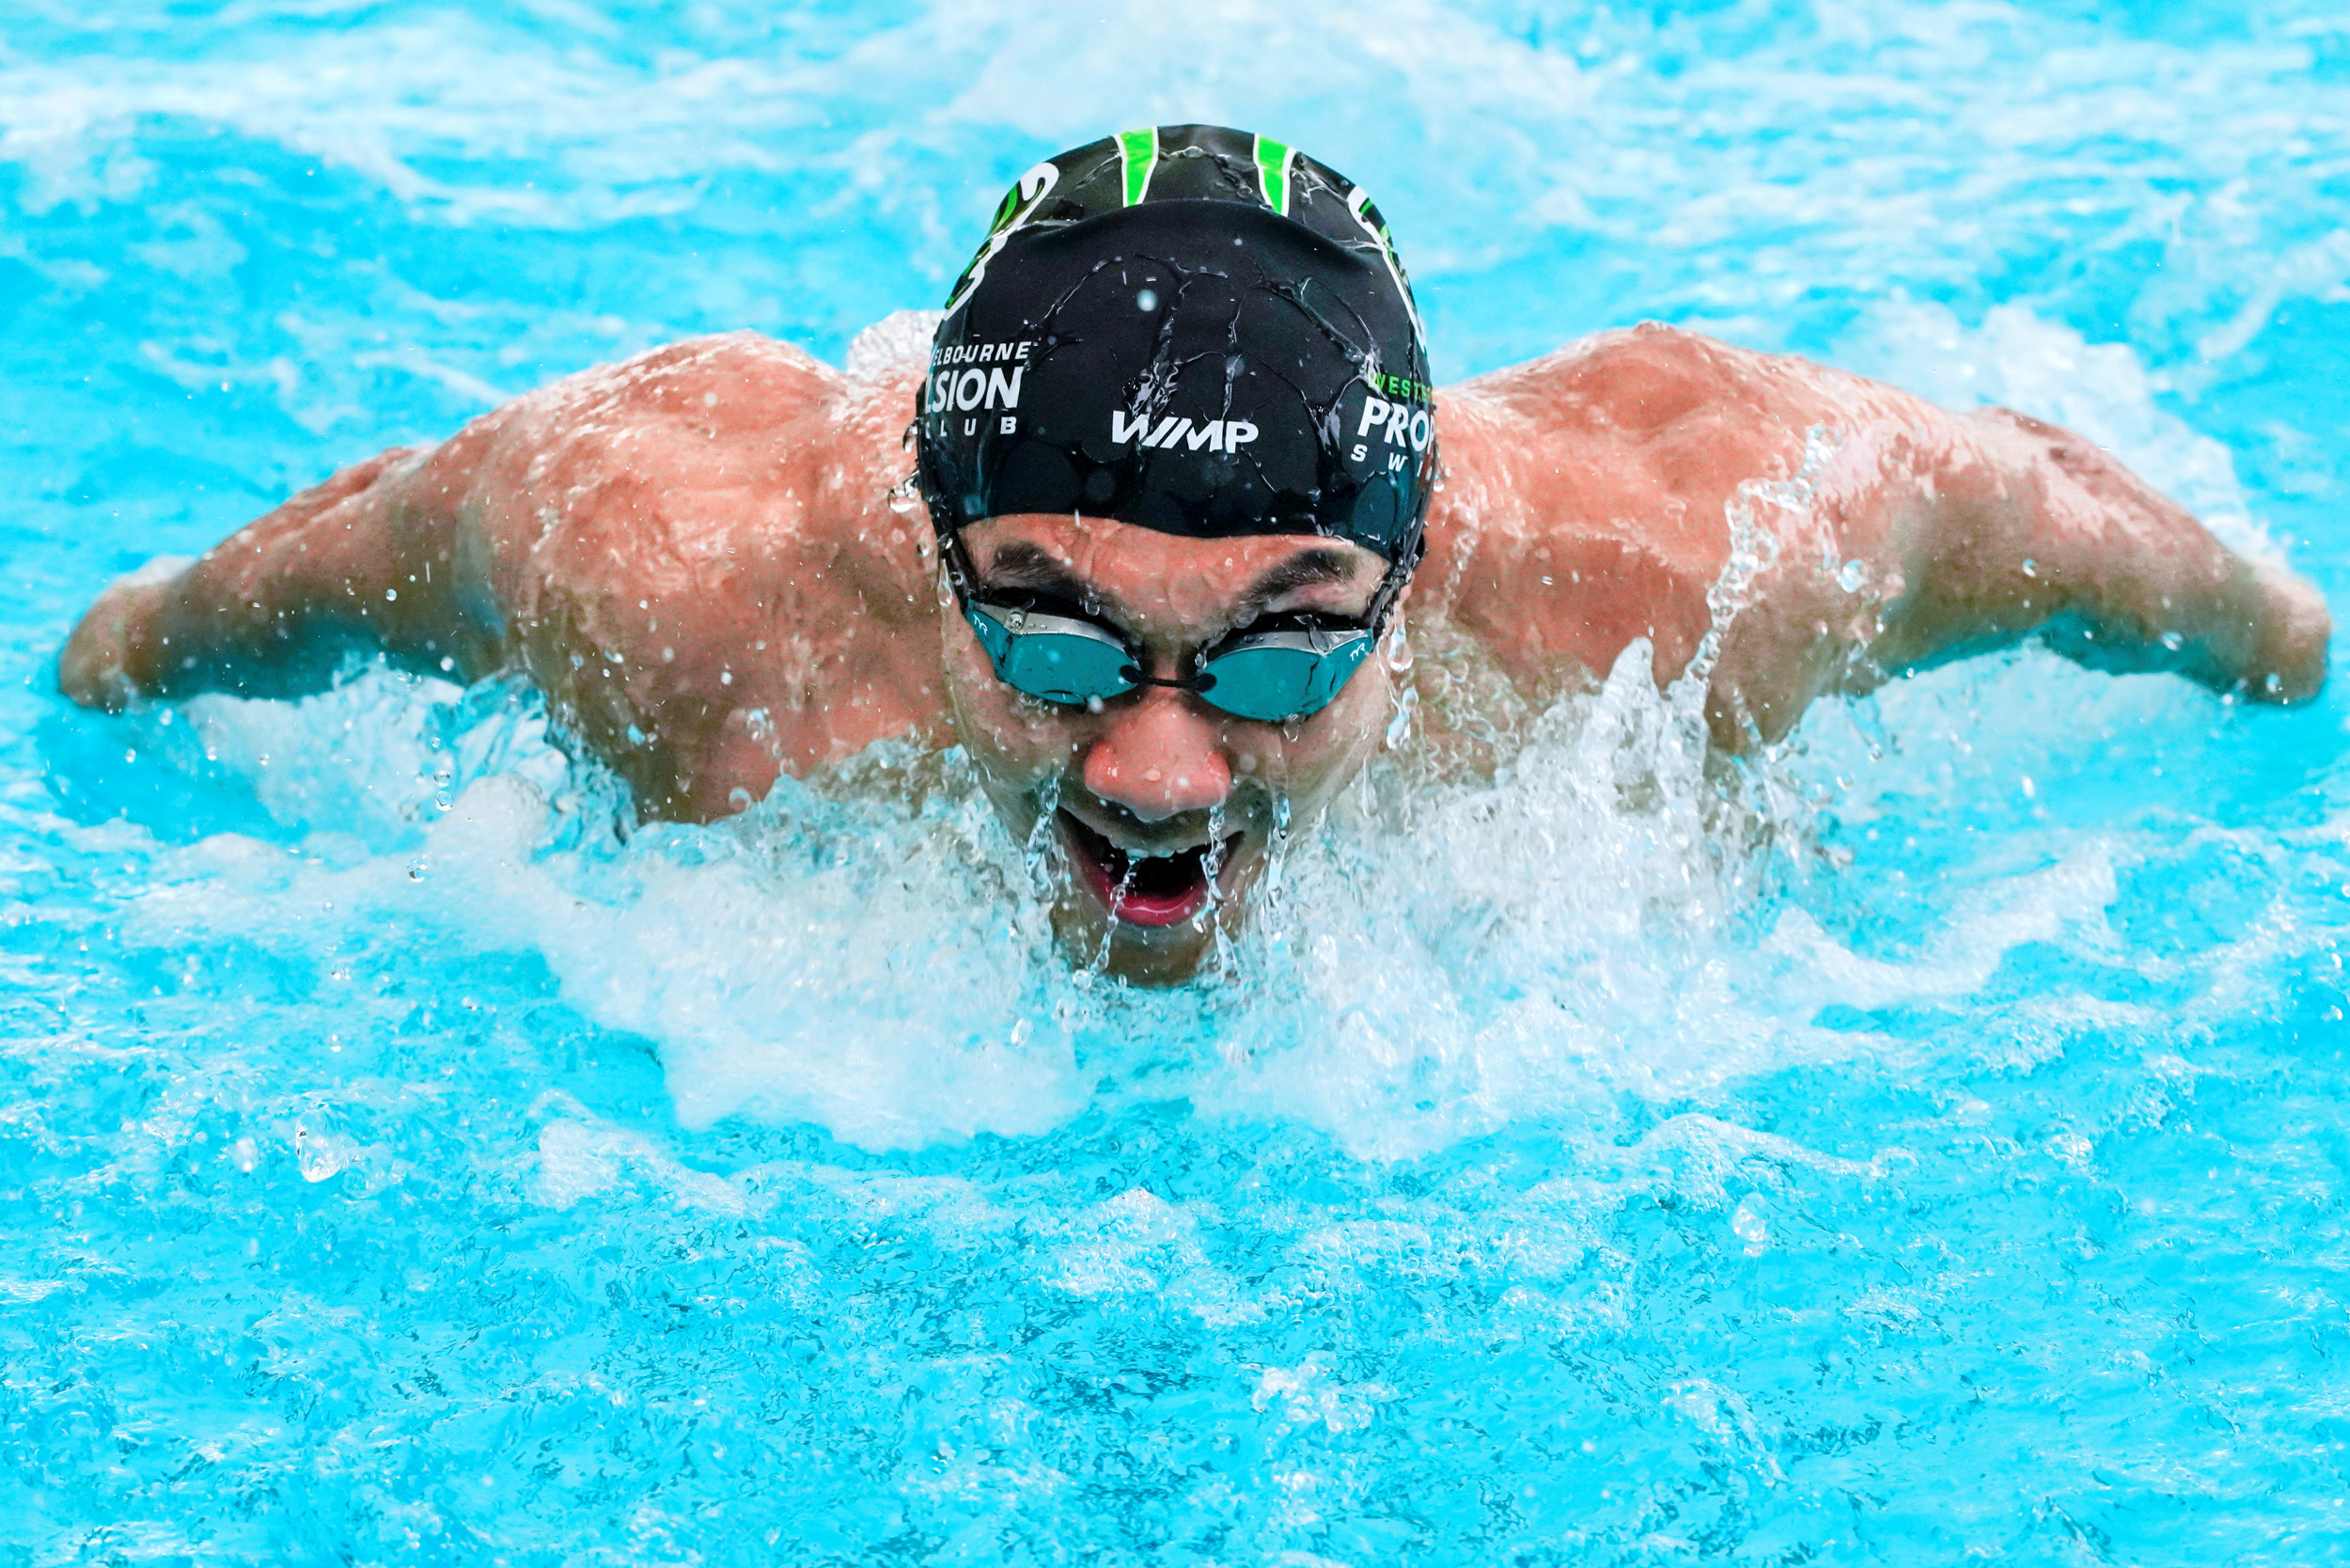 Swimmer sacrificed his Olympic dream after brutal military coup